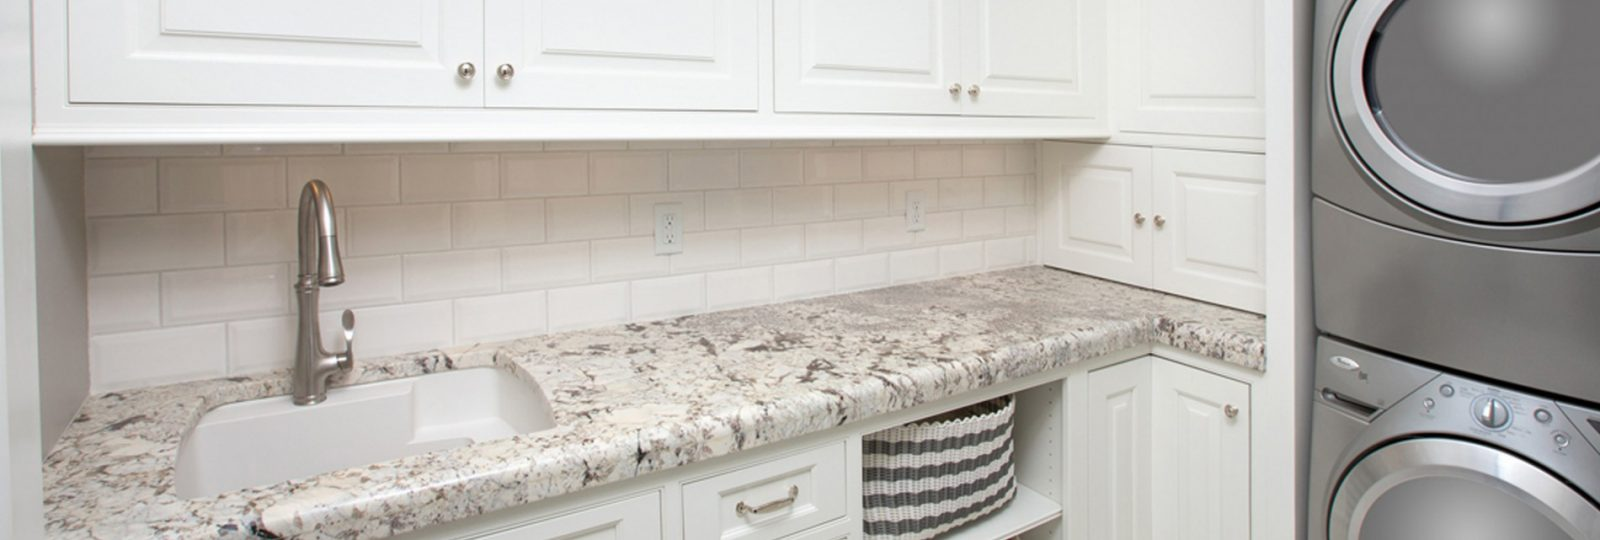 new kitchen laundry mud room cabinets